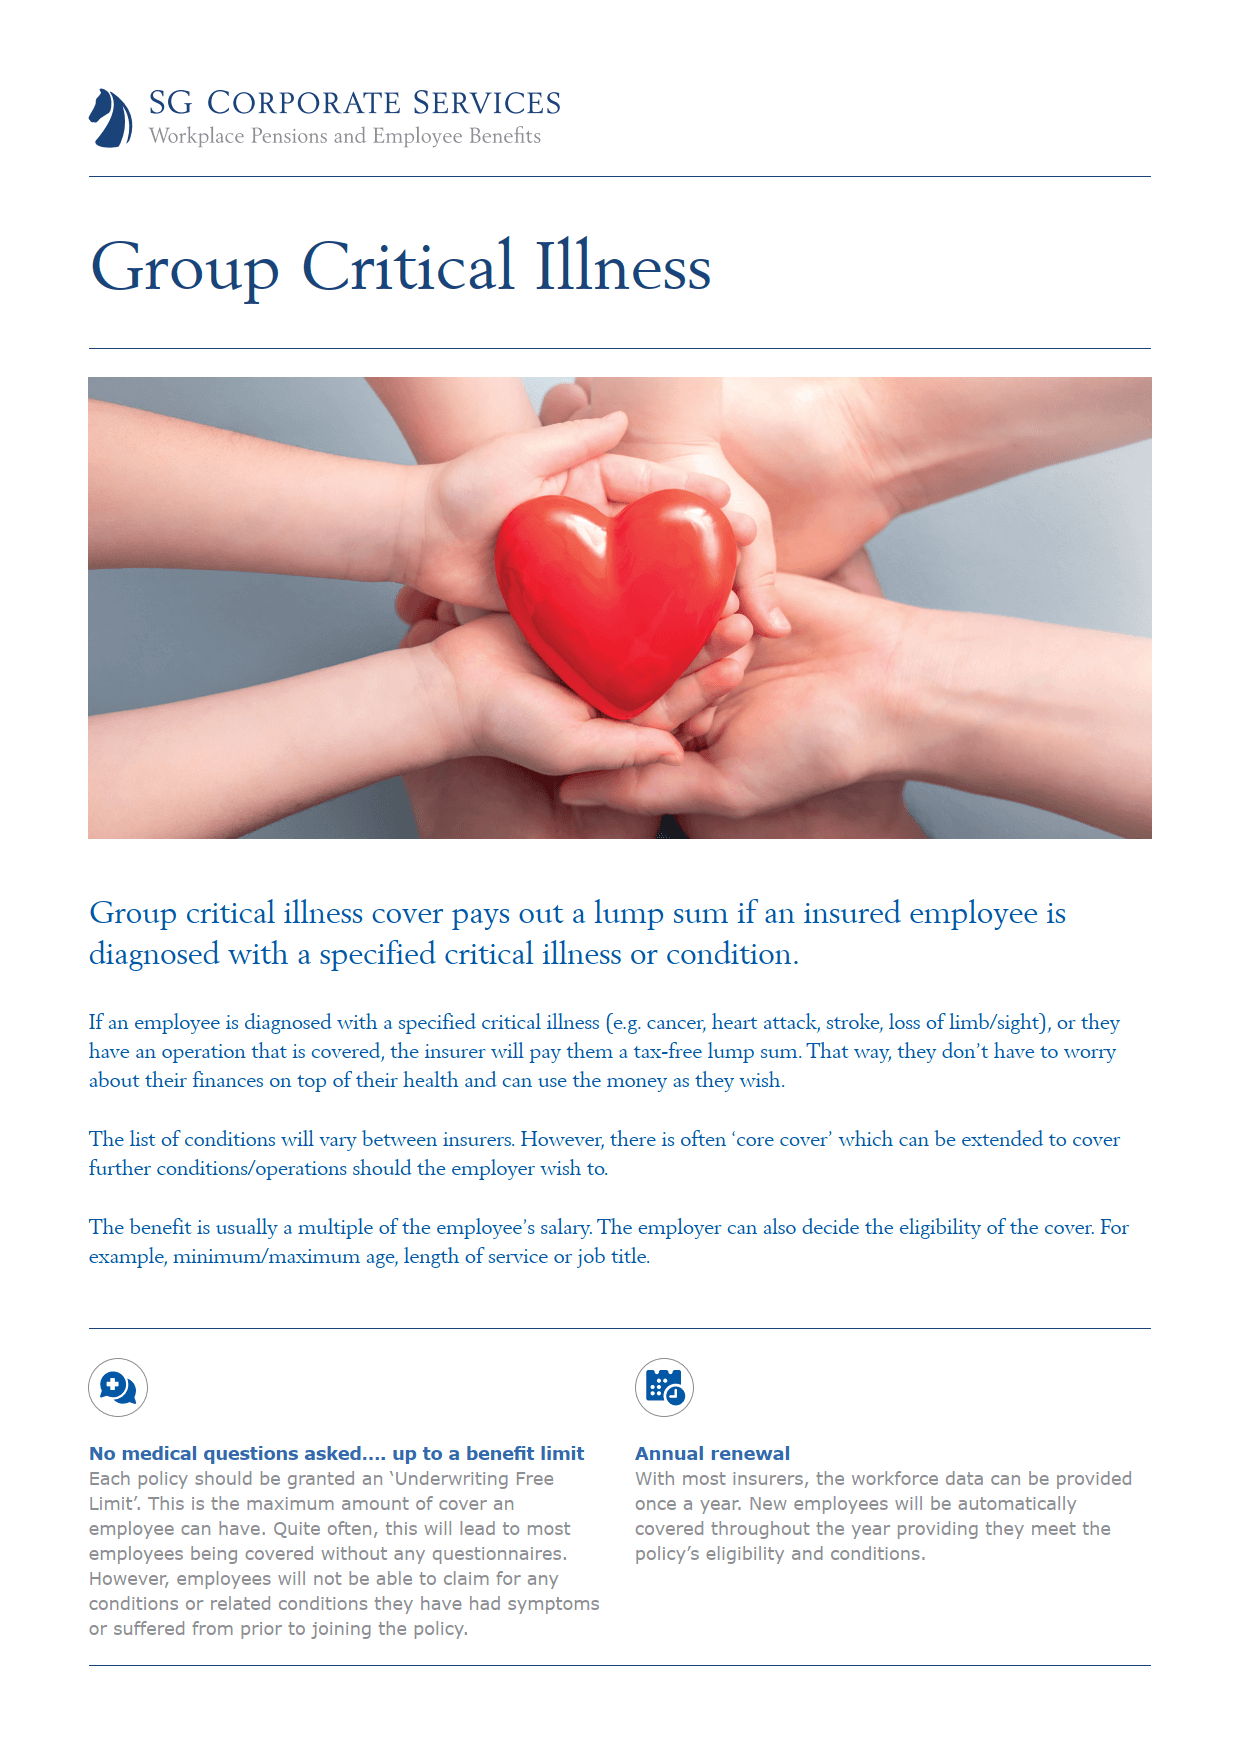 Product Guide - Group Critical Illness